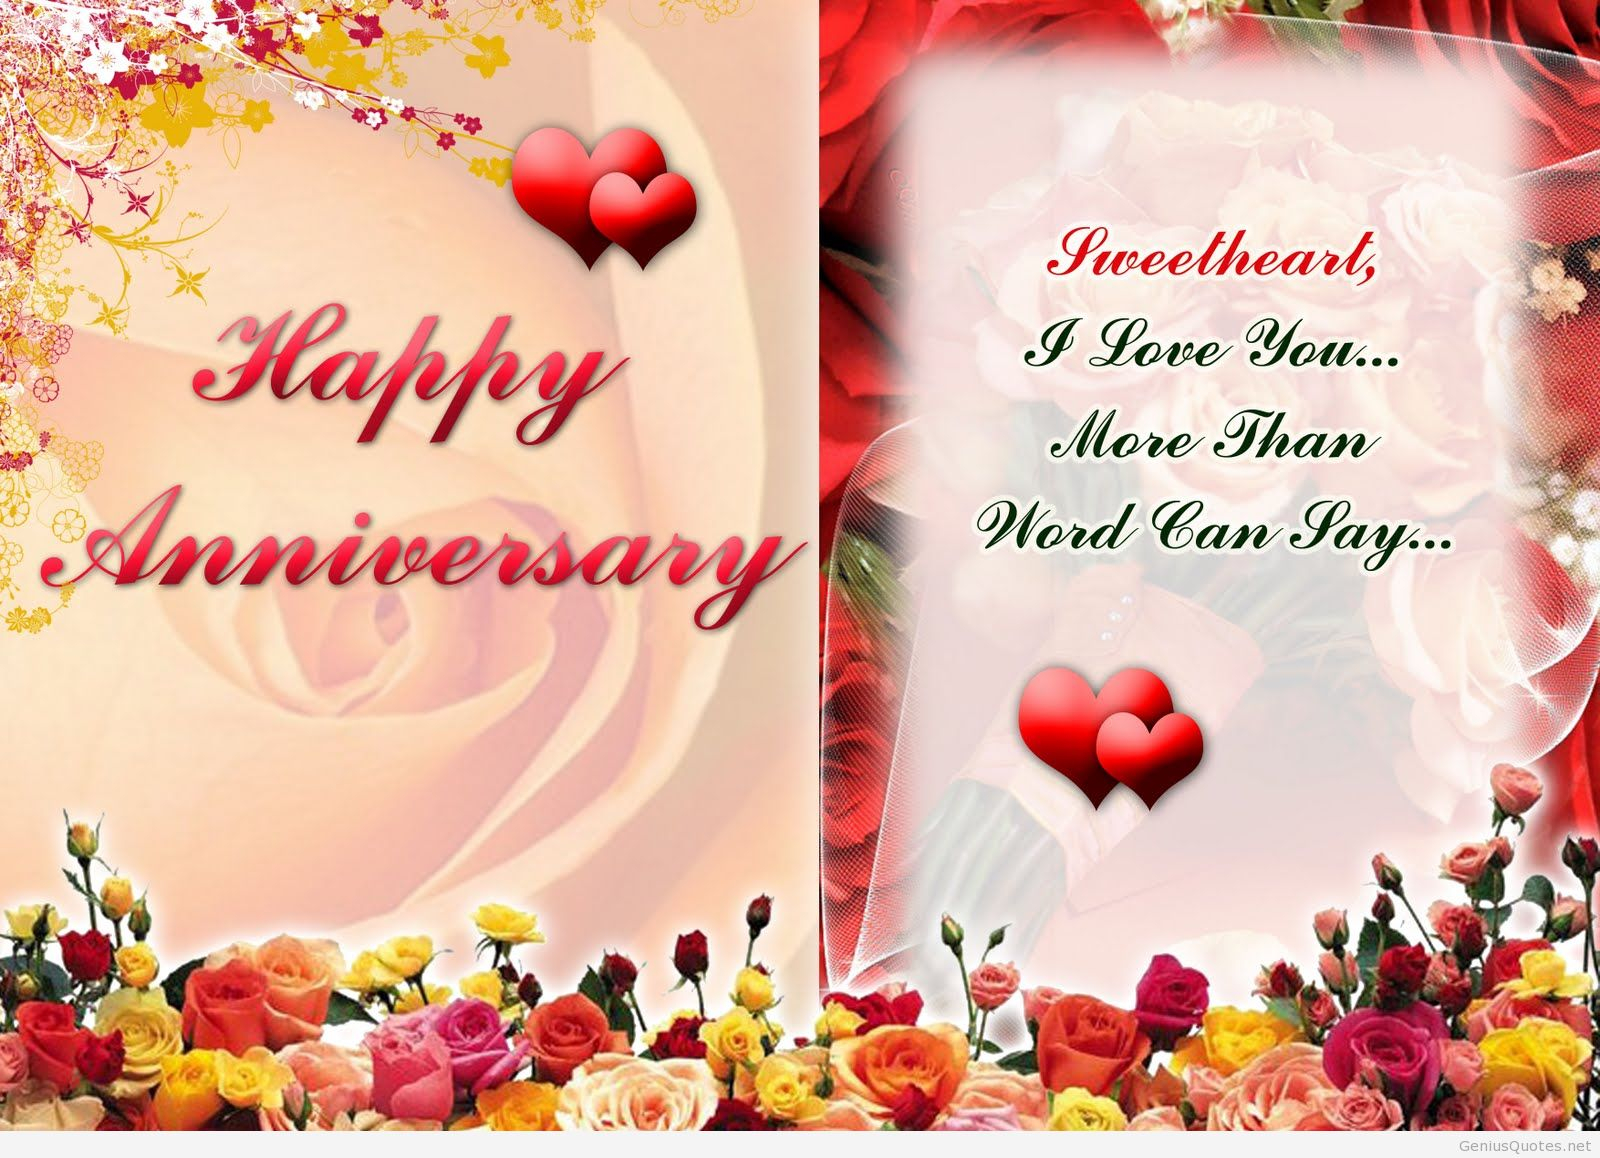 Sweetheart I Love You More Than Word Can Say Happy Anniversary